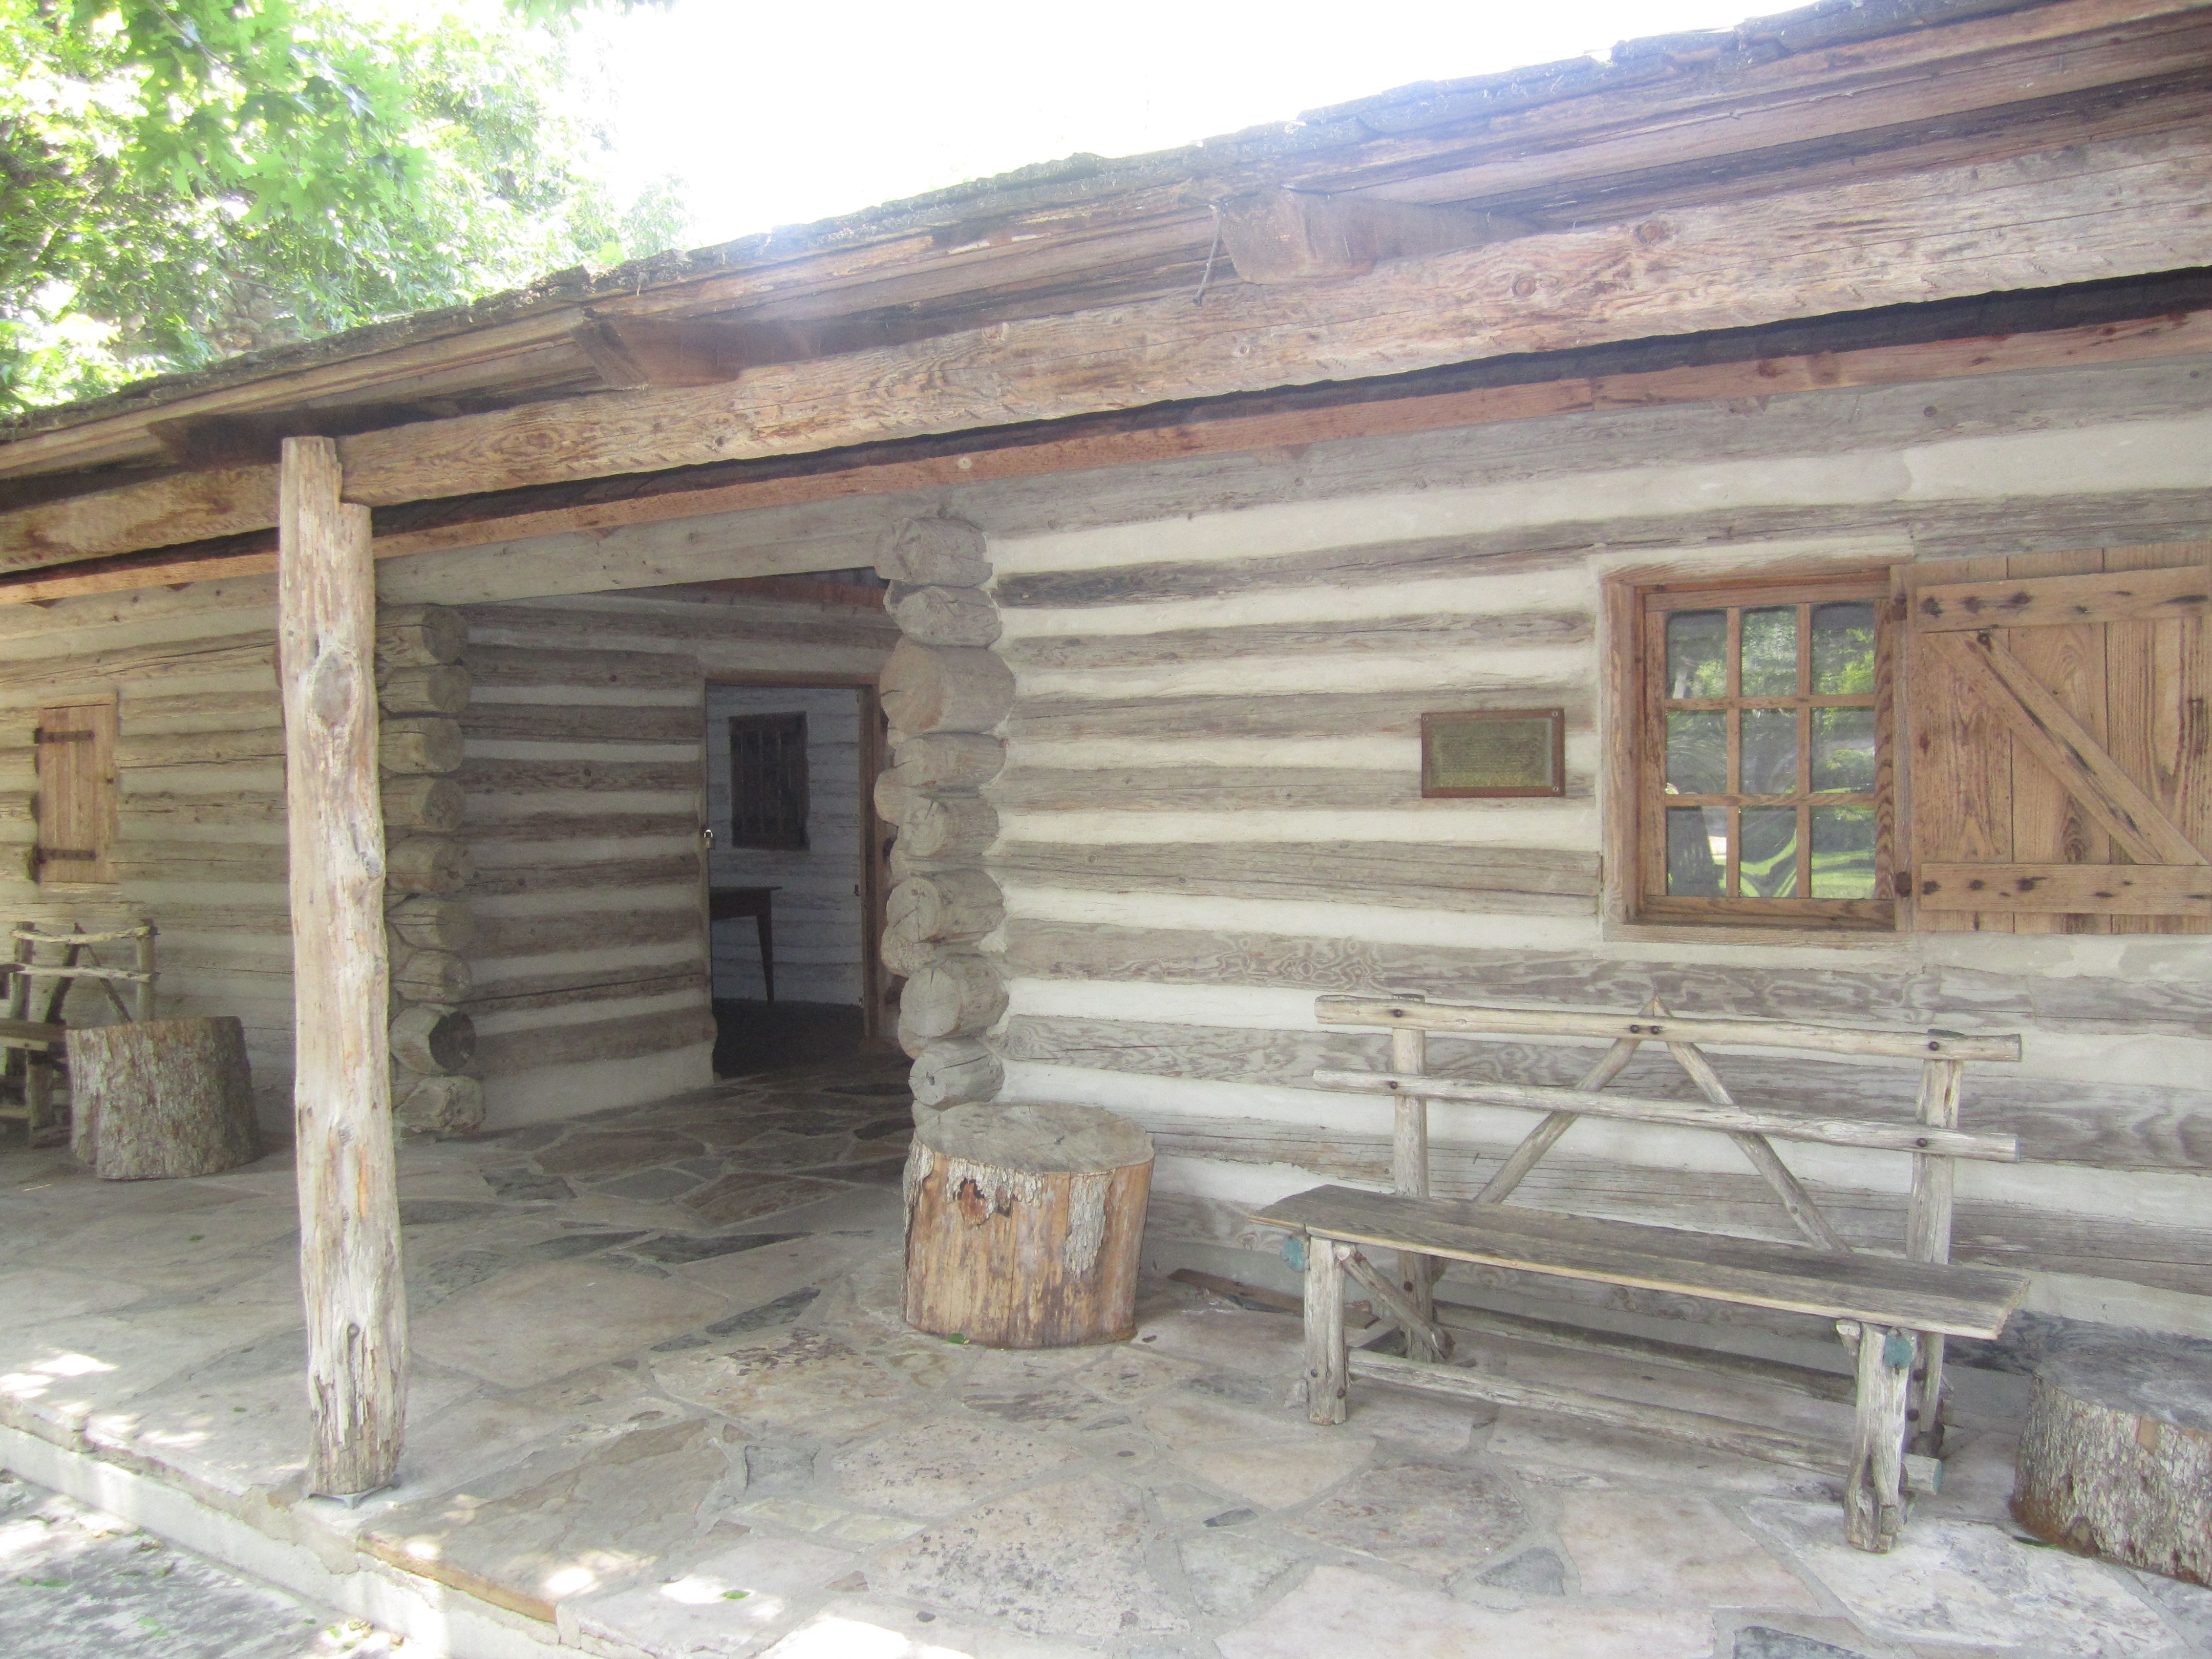 Dog Trot Cabin | Description Dogtrot Log Cabin At Witte, San Antonio, TX IMG